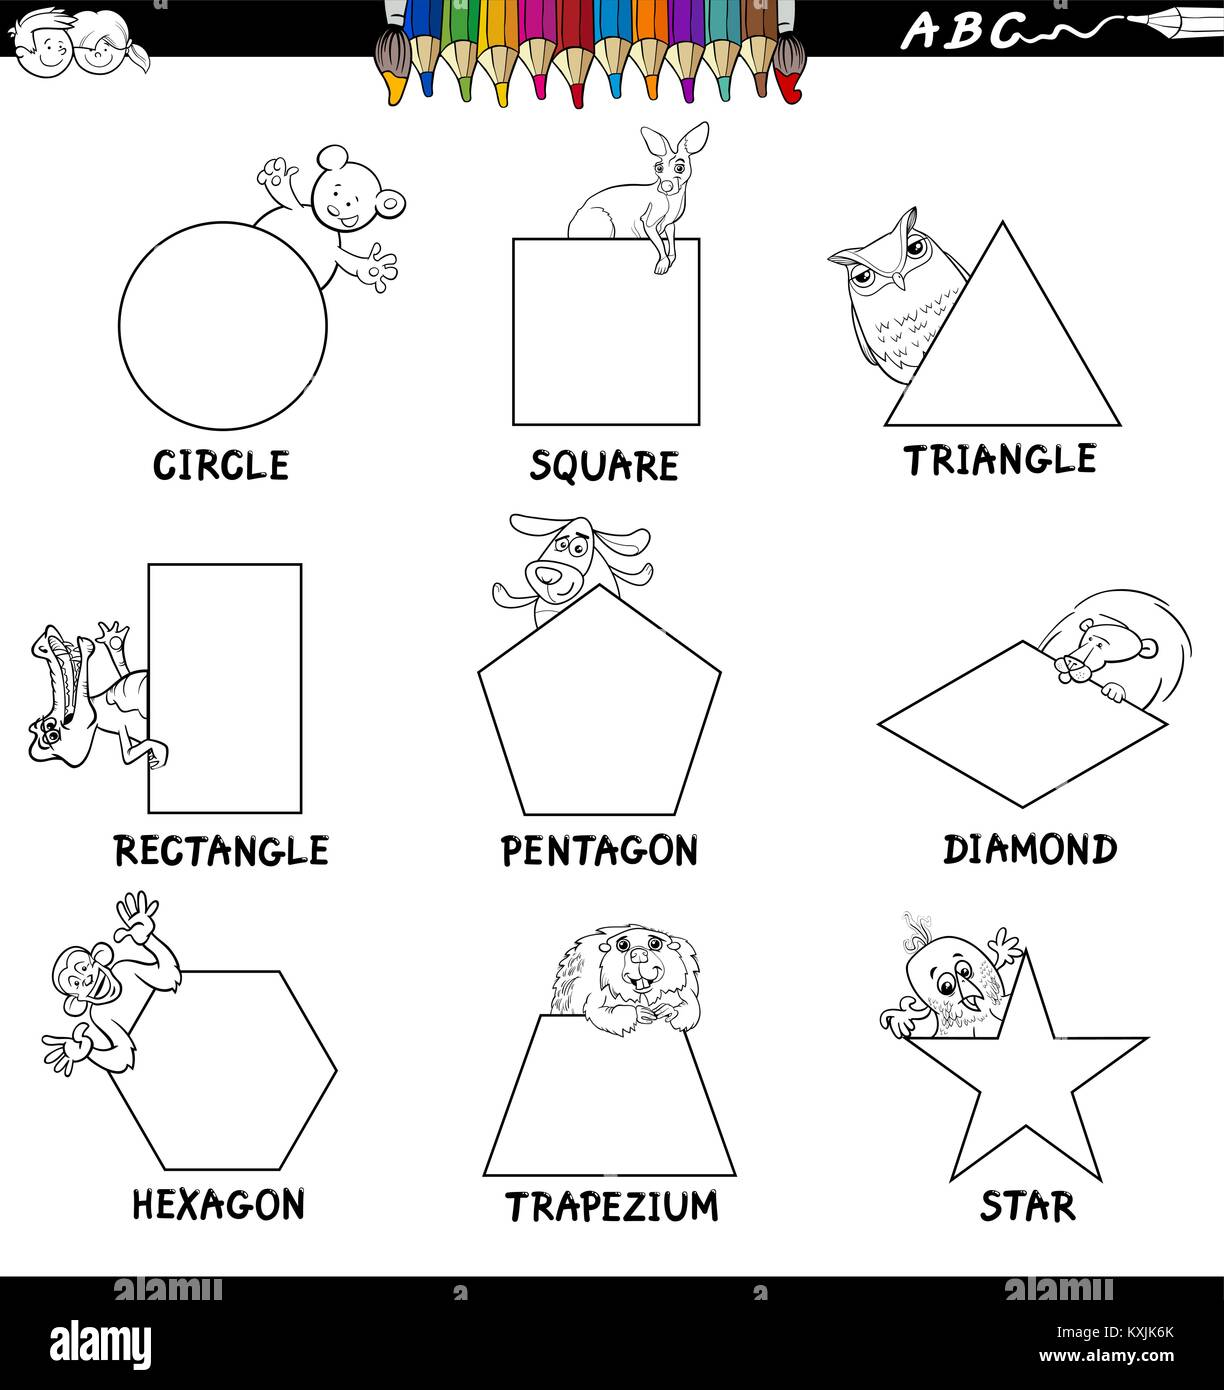 Black And White Cartoon Illustration Of Basic Shapes